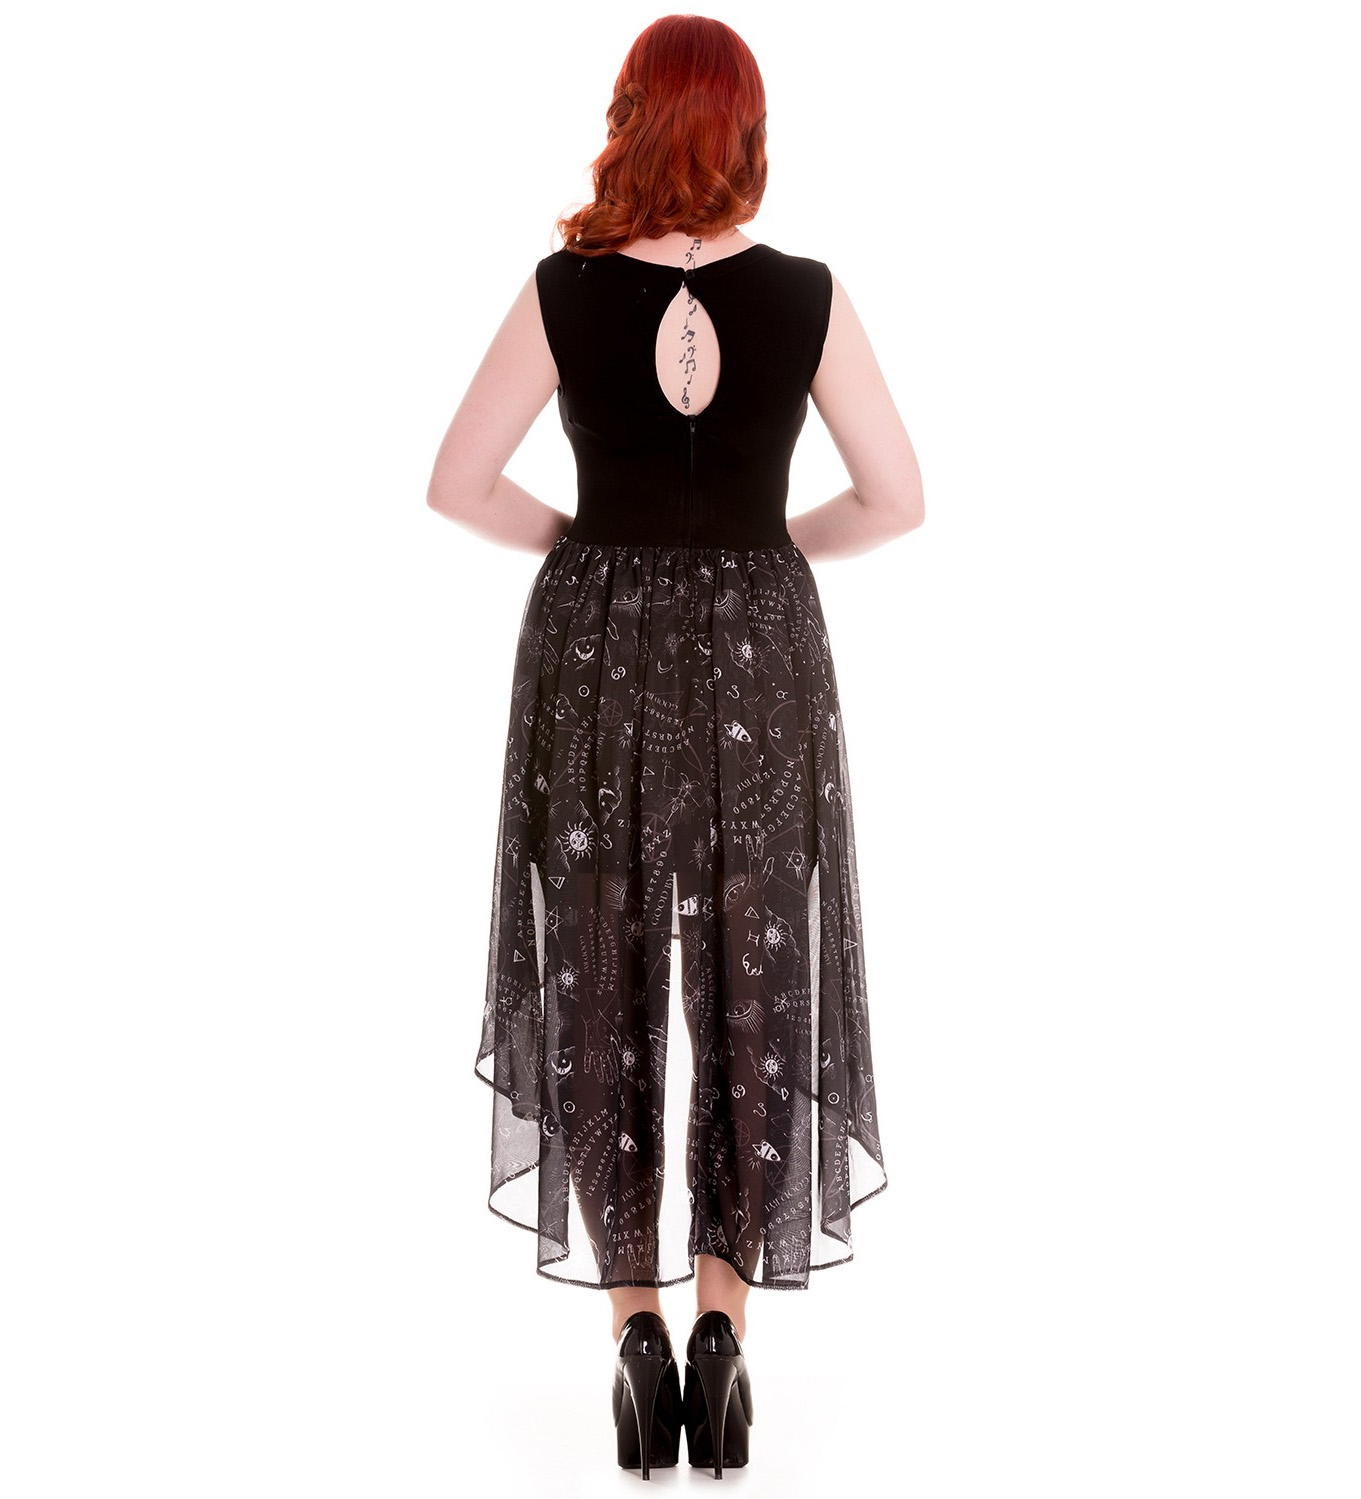 HELL-BUNNY-Spin-Doctor-Goth-Black-Witch-Ouija-SPIRIT-Dress-All-Sizes thumbnail 25